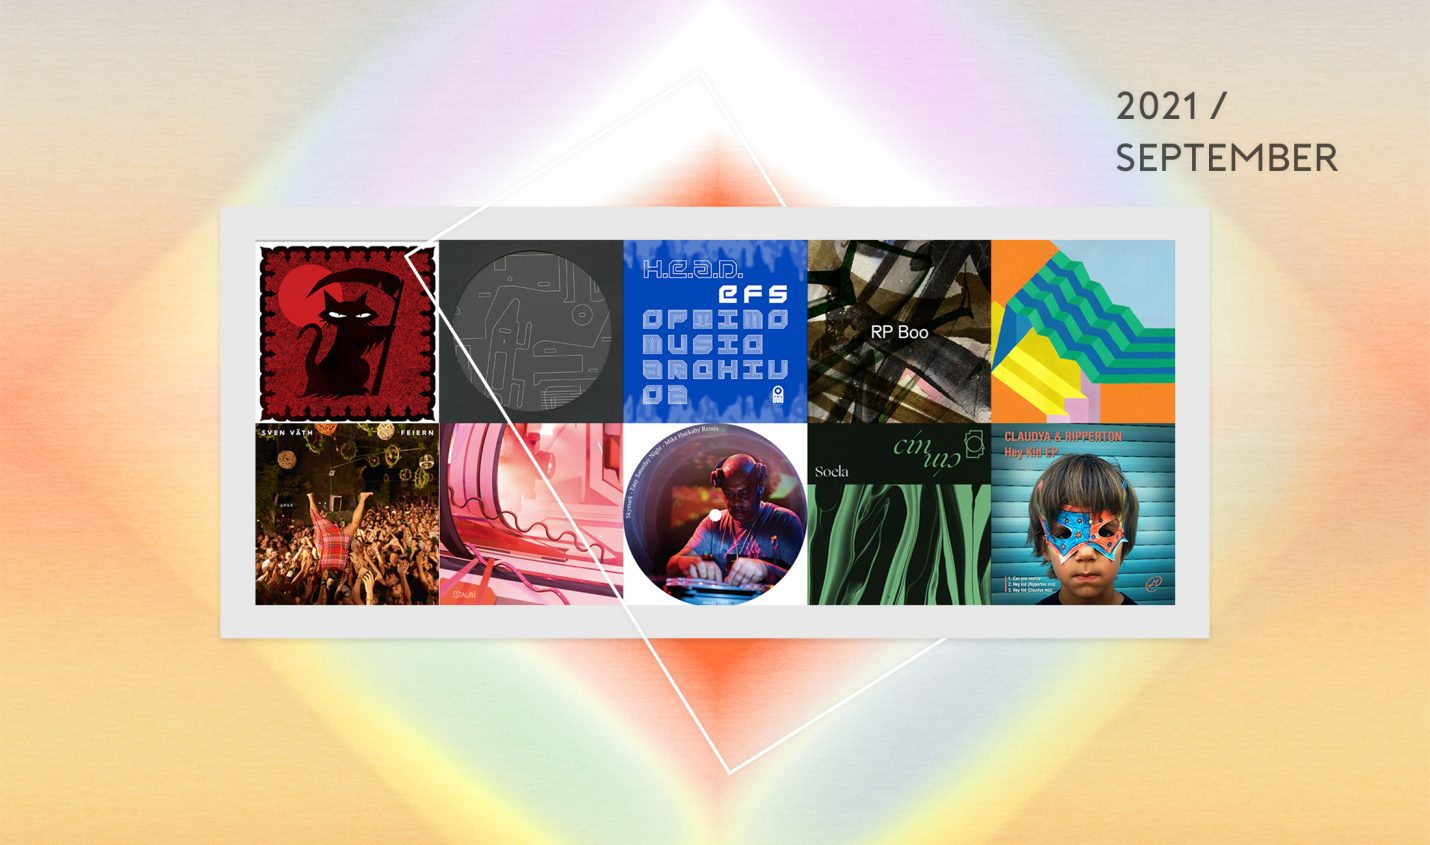 Preview: Upcoming Tracks & Releases September 2021